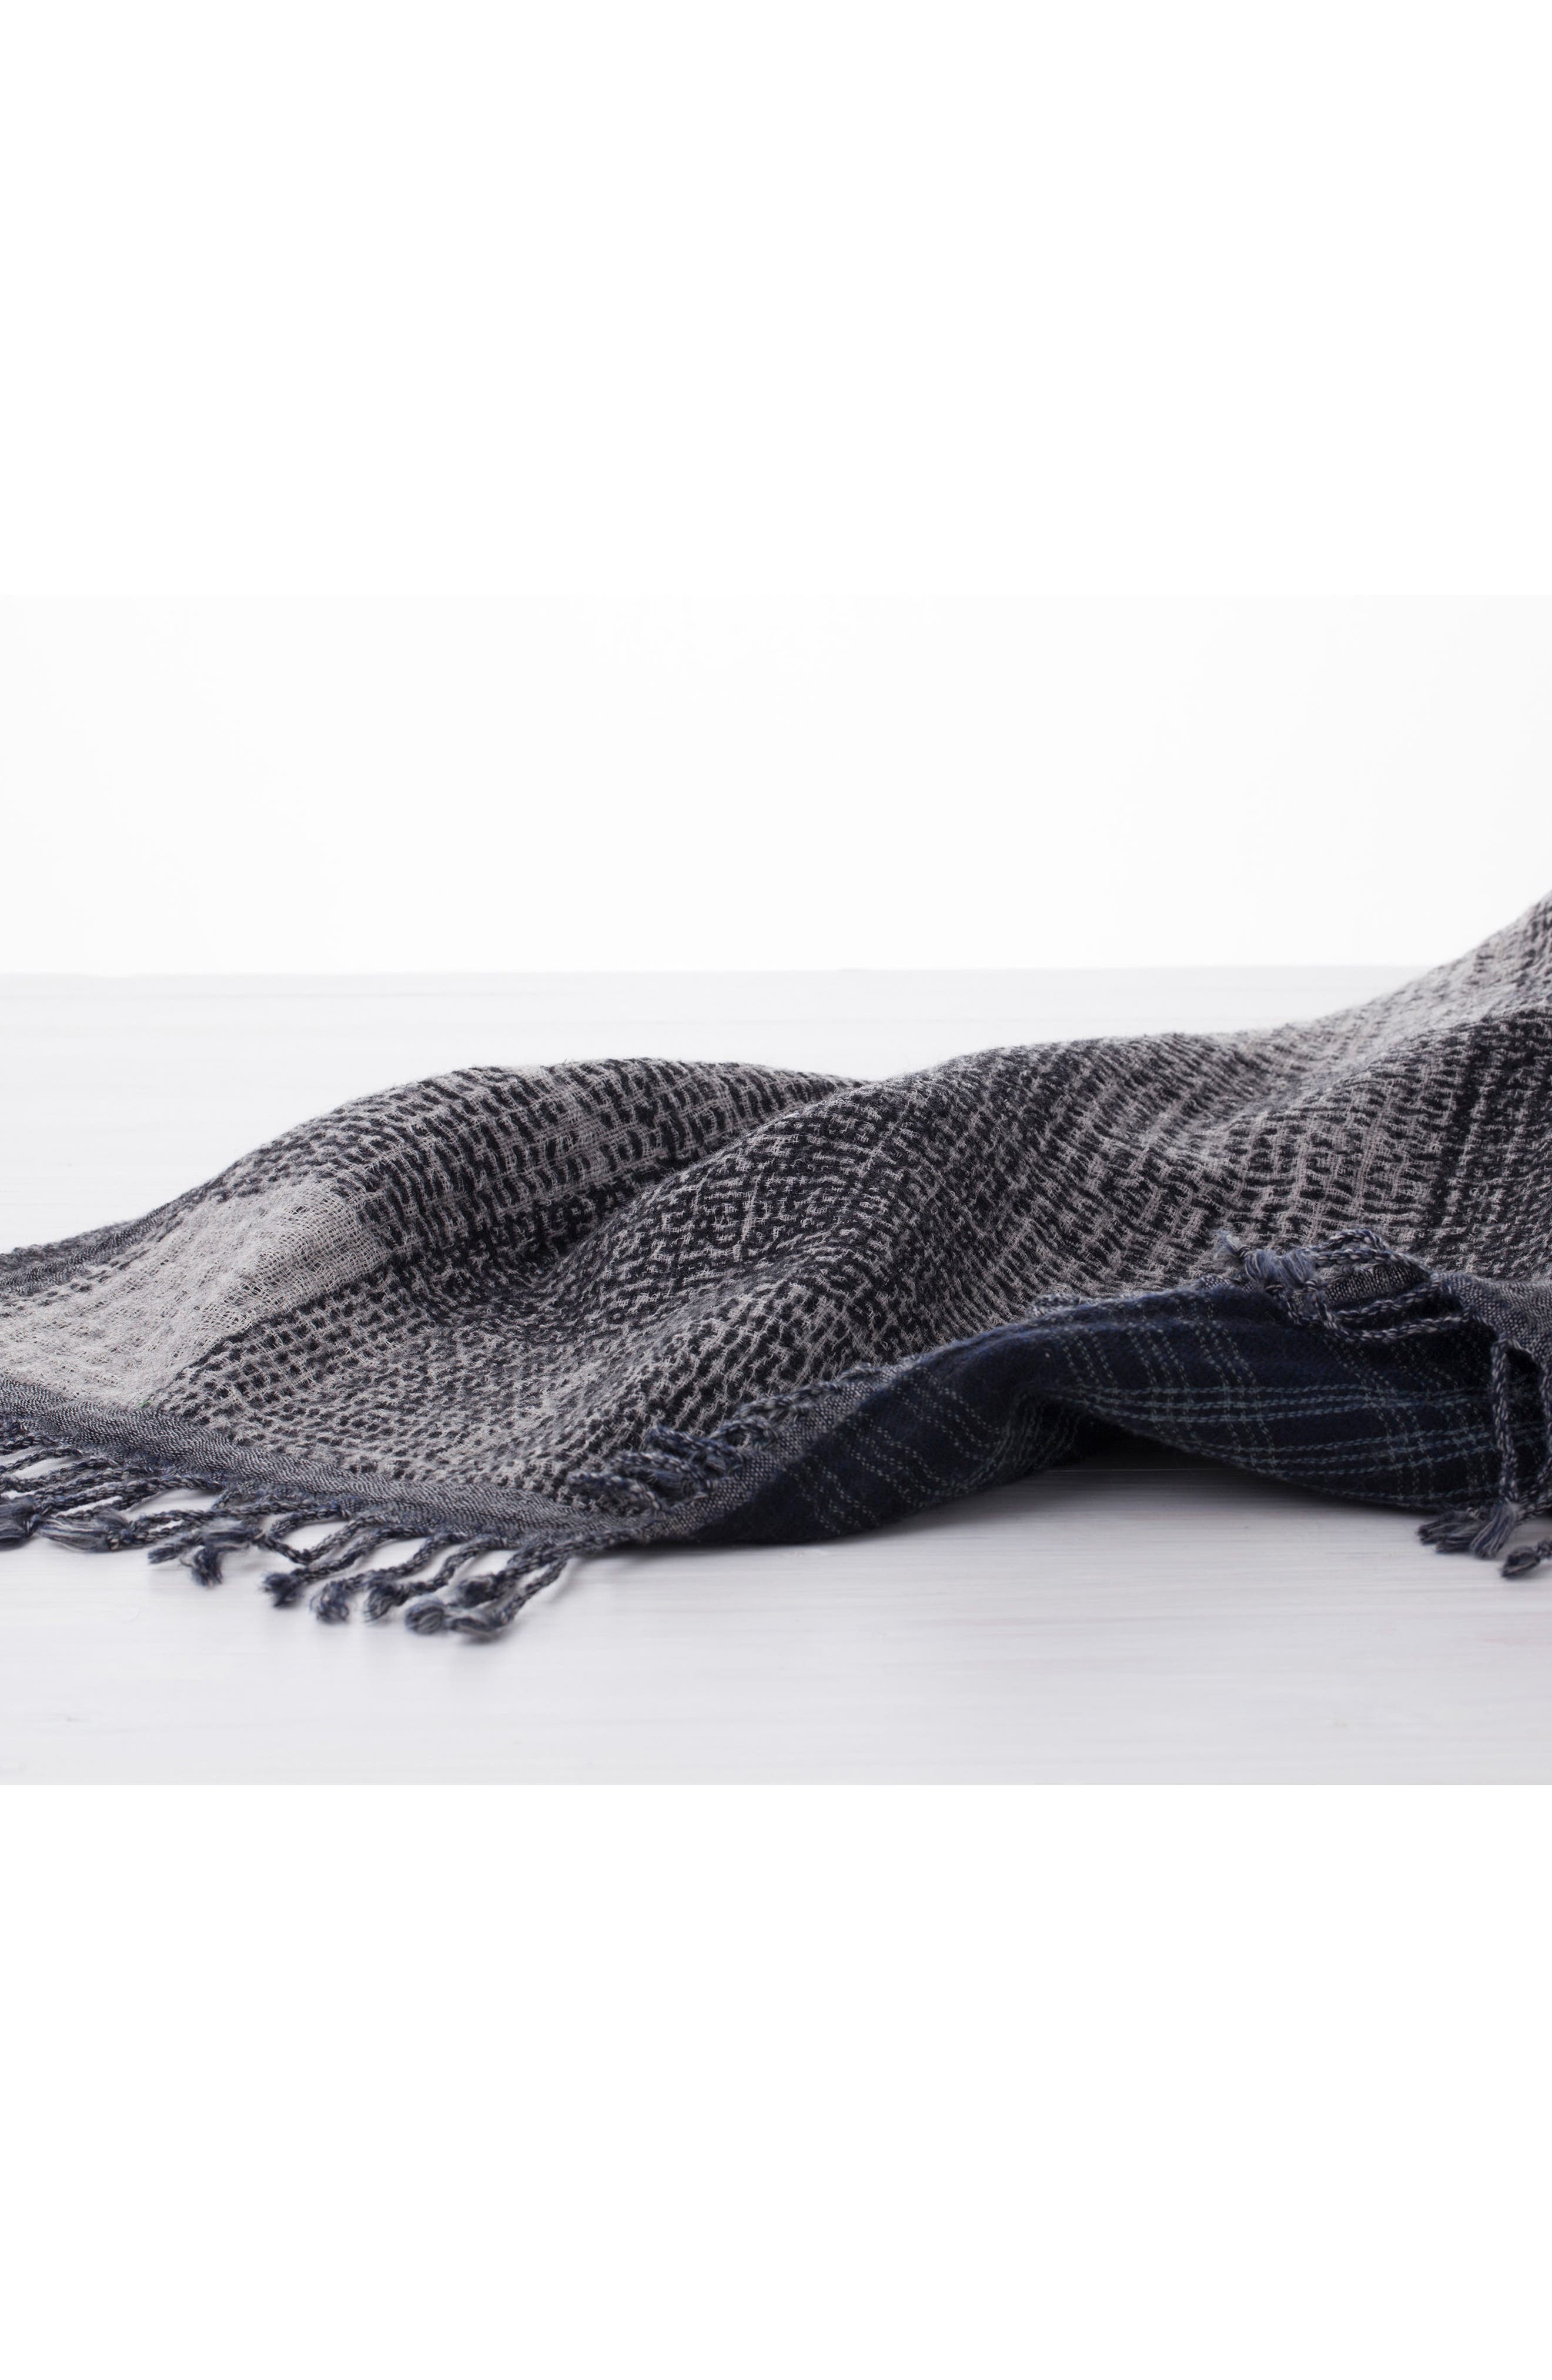 Alternate Image 3  - Modern Staples Deskloom Double Face Merino Wool Throw